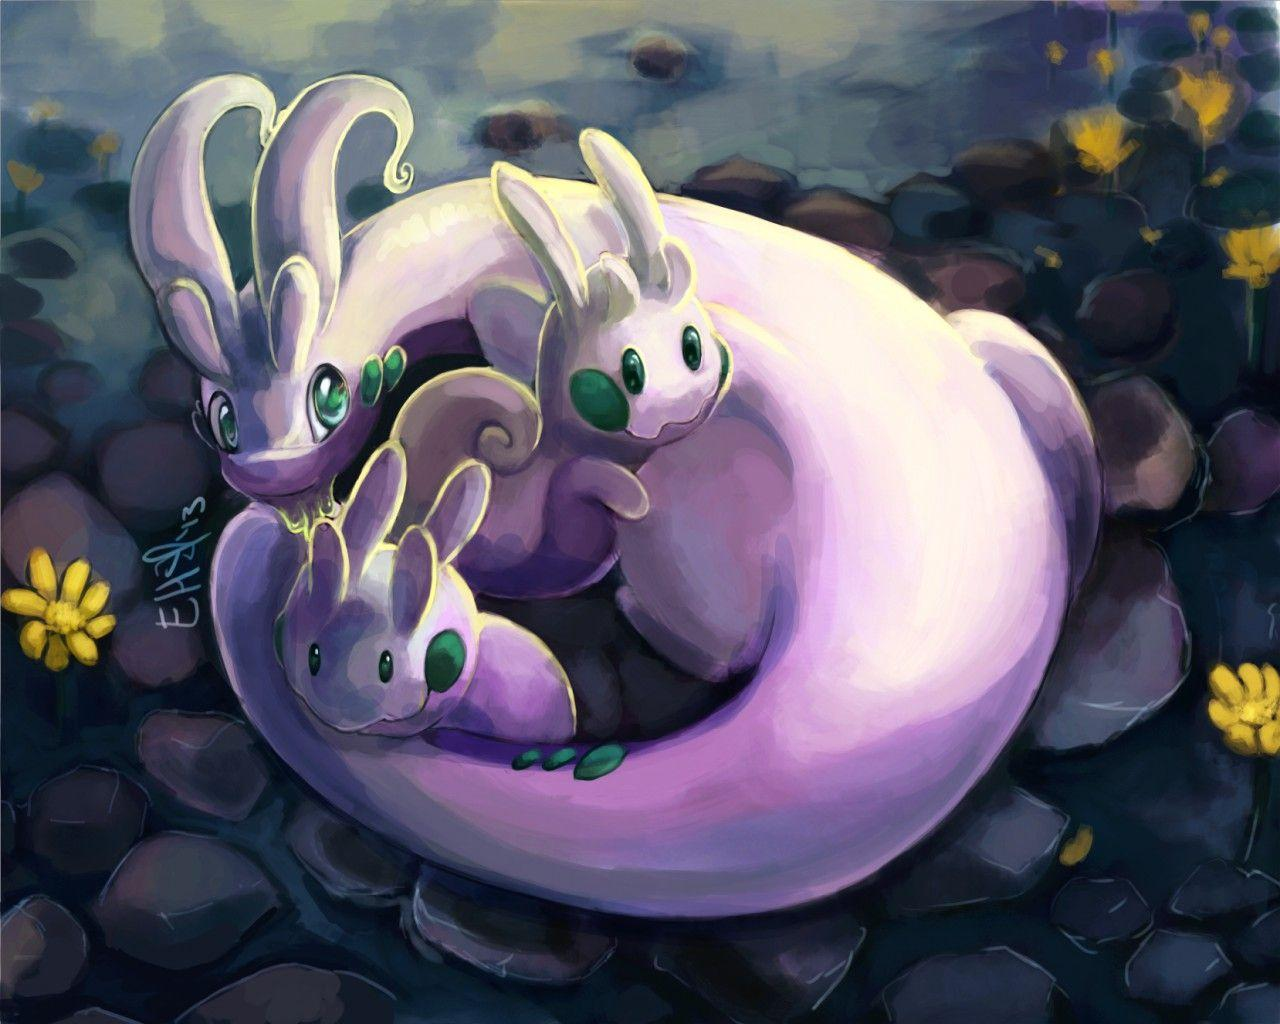 Goomy, Sliggoo & Goodra by artpaca -- Fur Affinity [dot] net